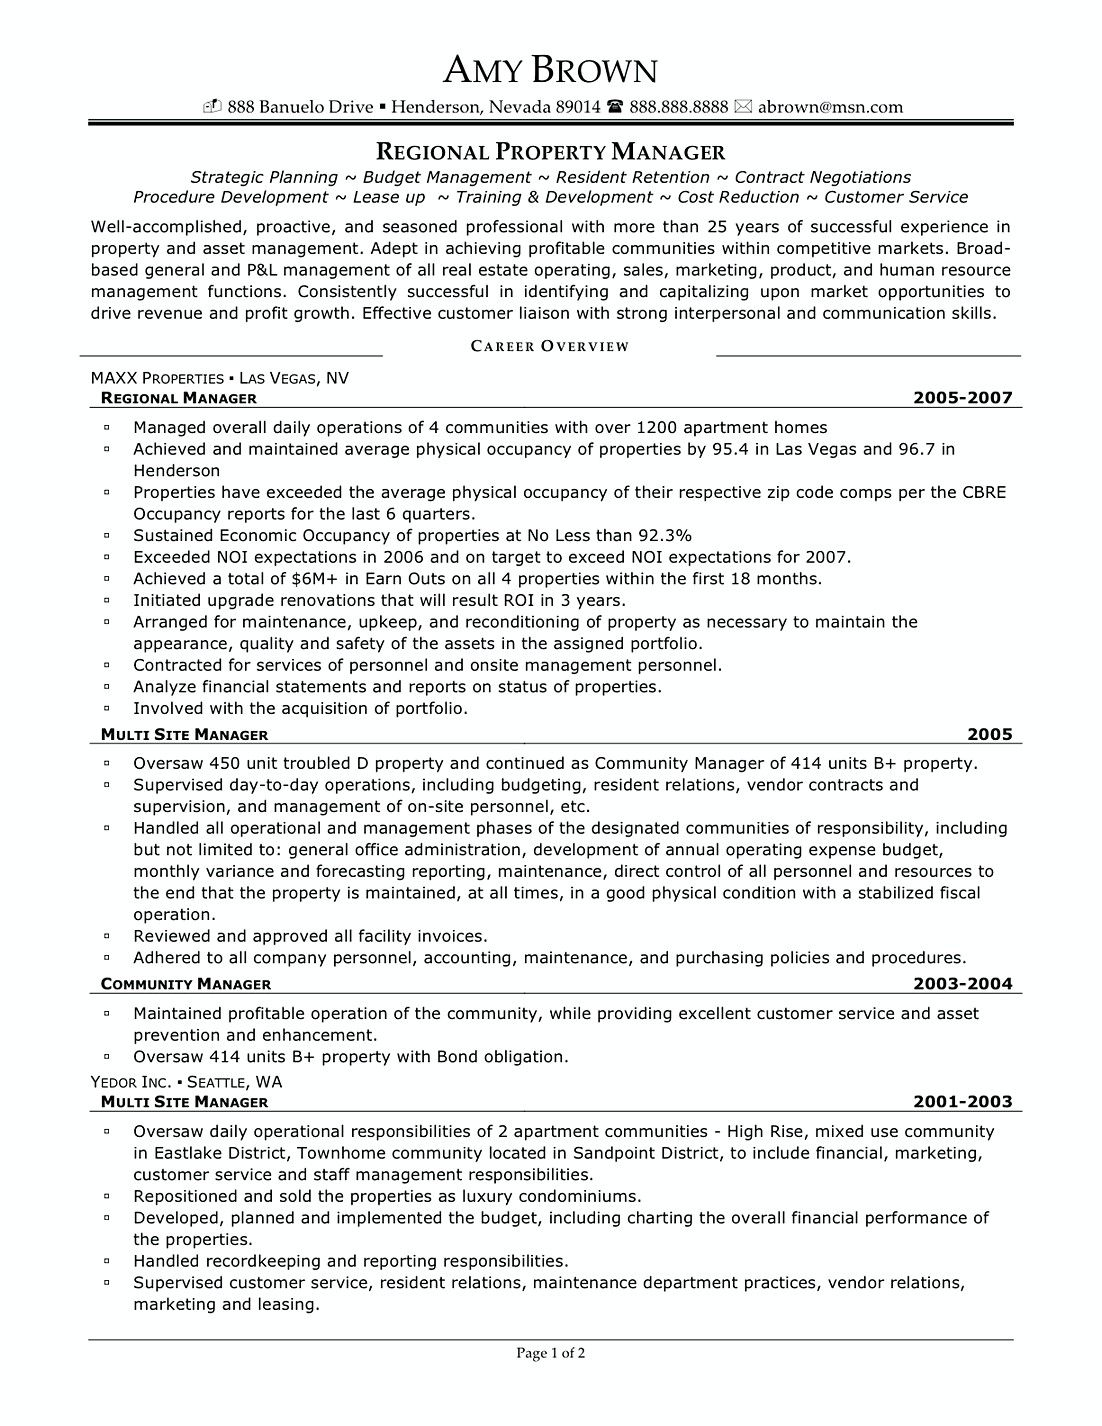 Security Supervisor Resume Regional Property Manager Resume Samples  Commercial Property